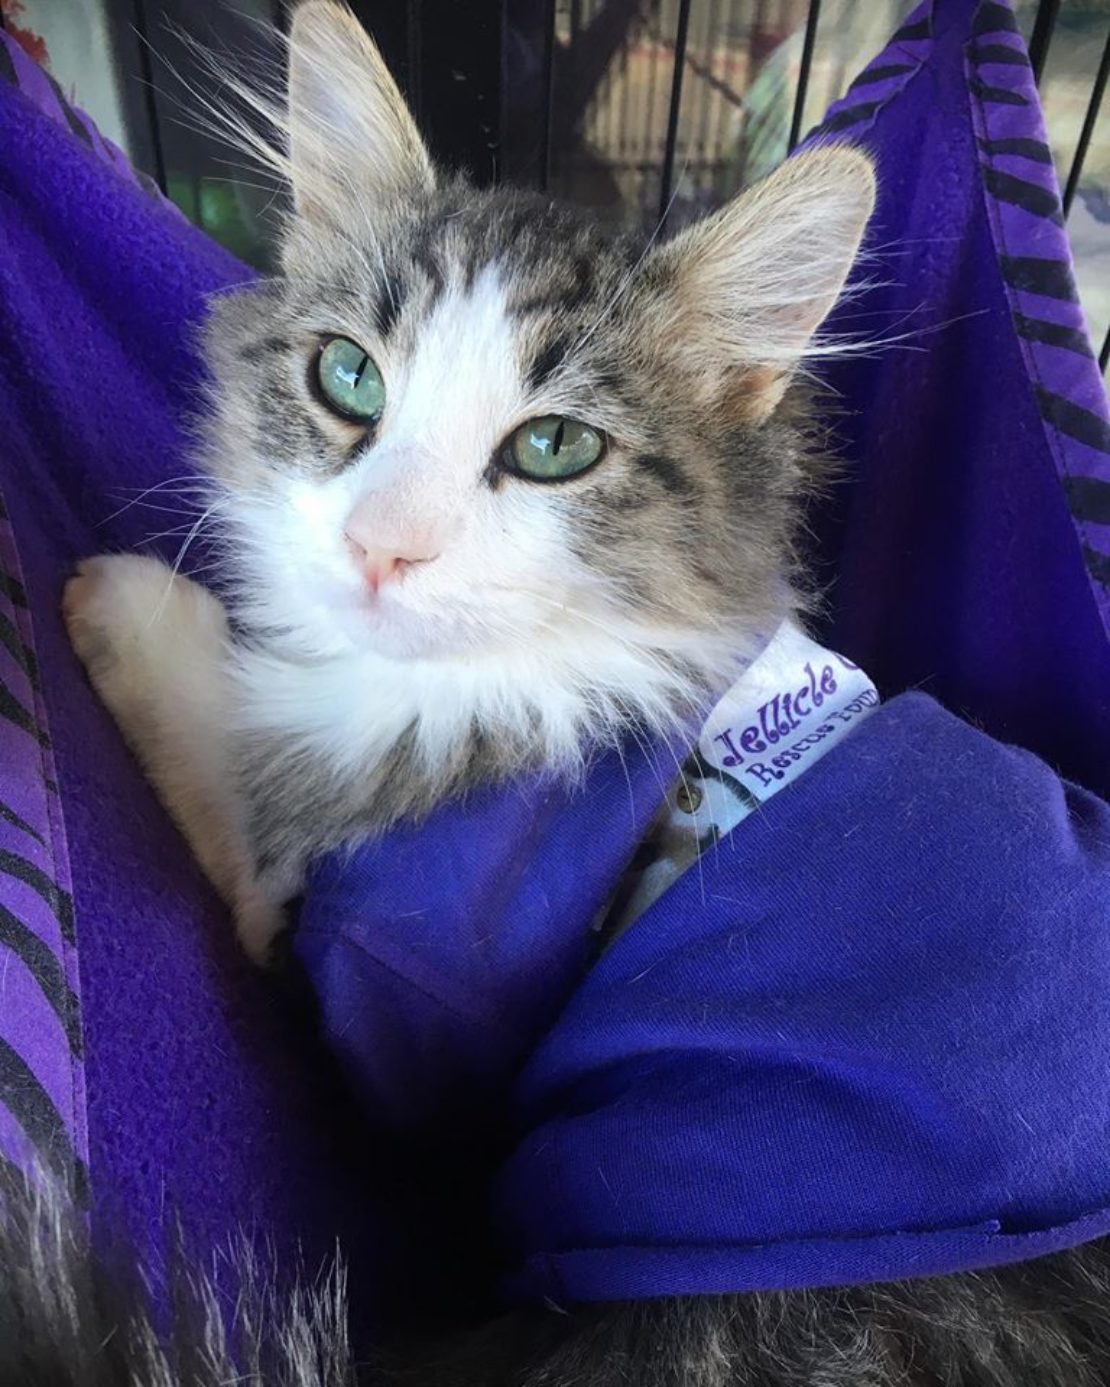 brown tabby with white mask and purple sweater stares lovingly into camera.